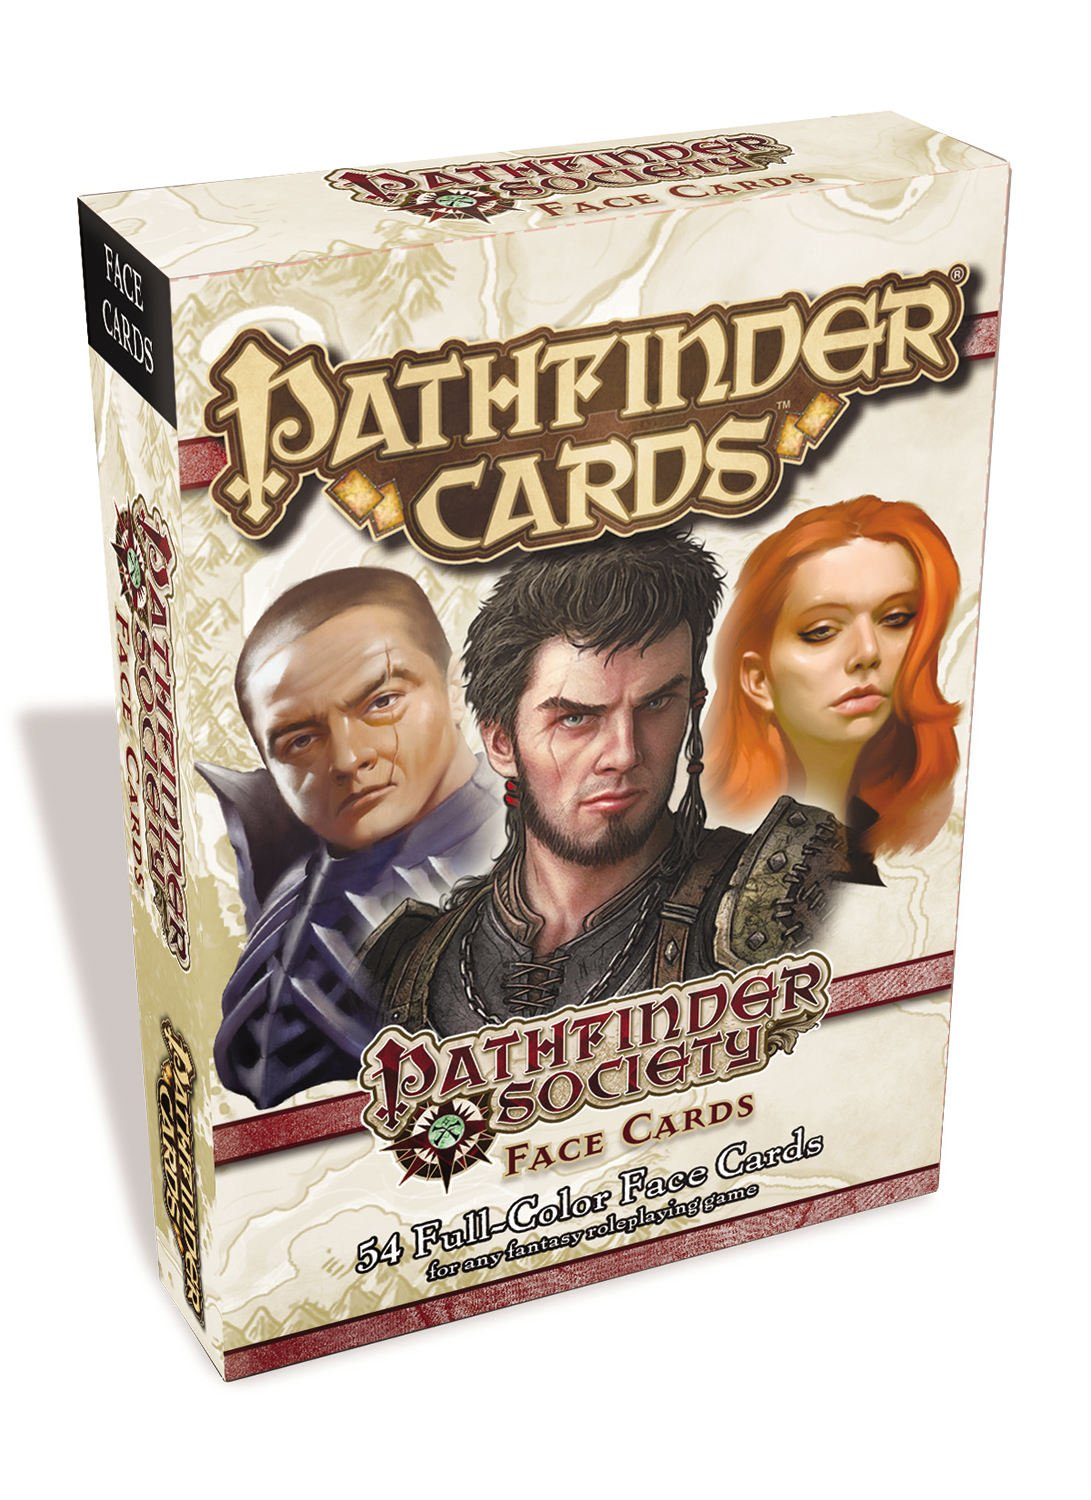 Amazon.com: Pathfinder Society Face Cards Deck (Pathfinder ...